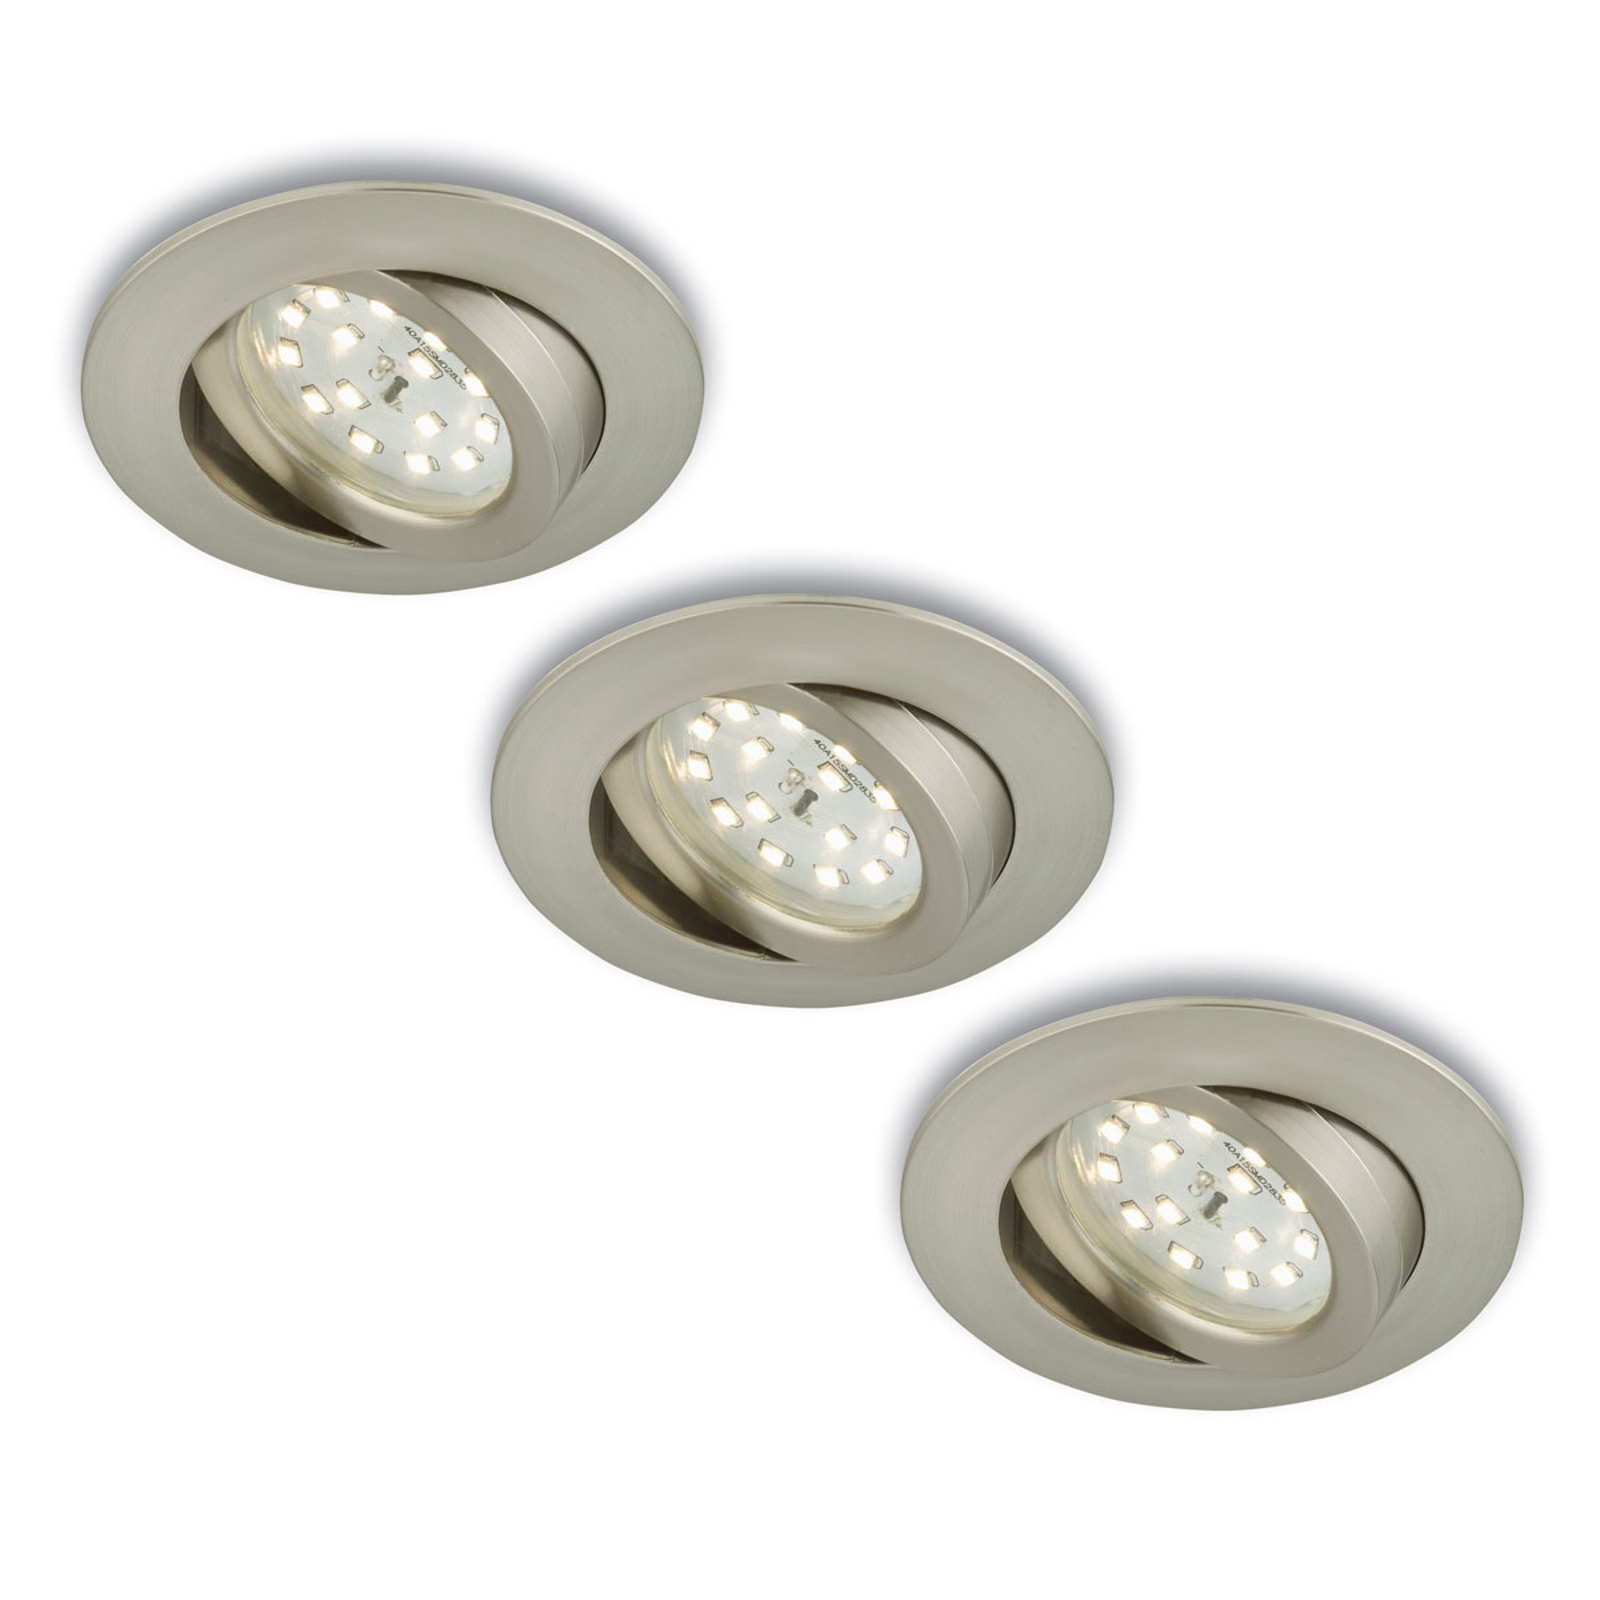 Rotatab. LED recessed light, set of 3, matt nickel_1510288_1